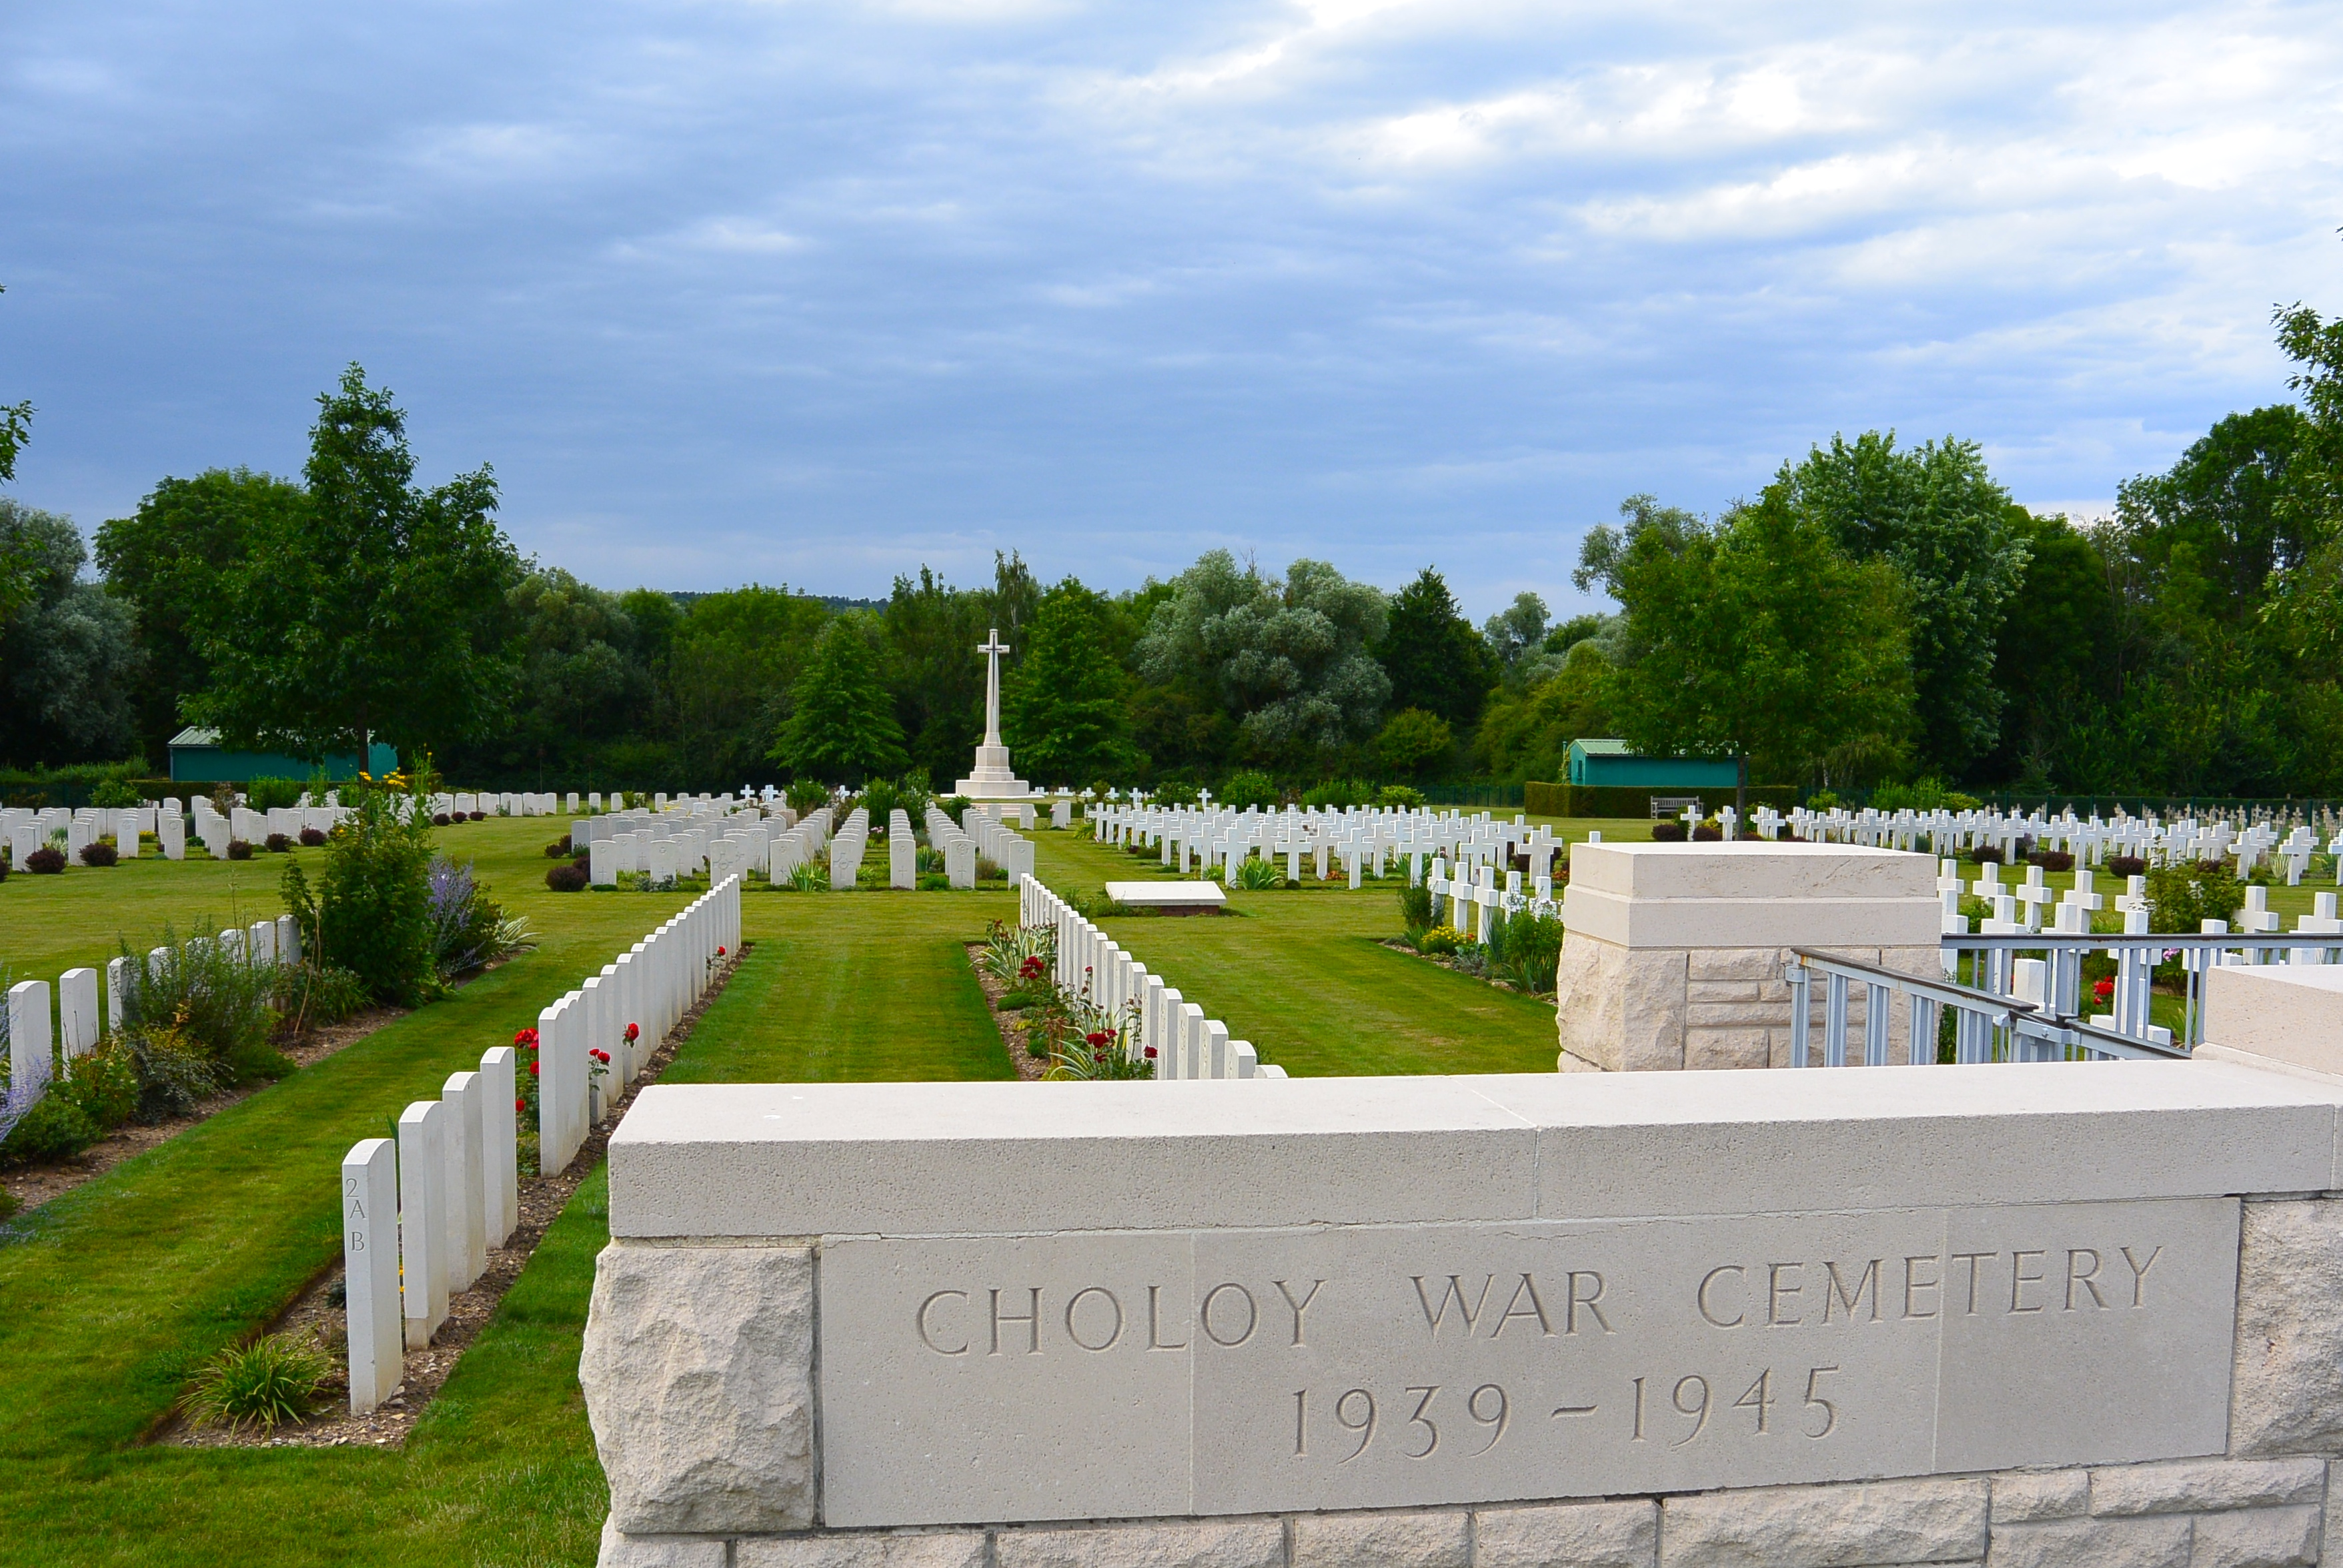 Choloy War Cemetery